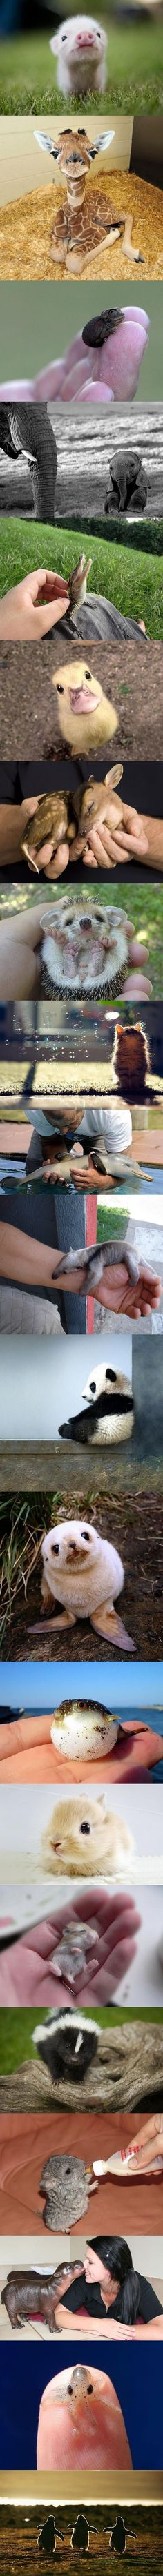 Baby animals-Soooo priceless, sooo adorable!